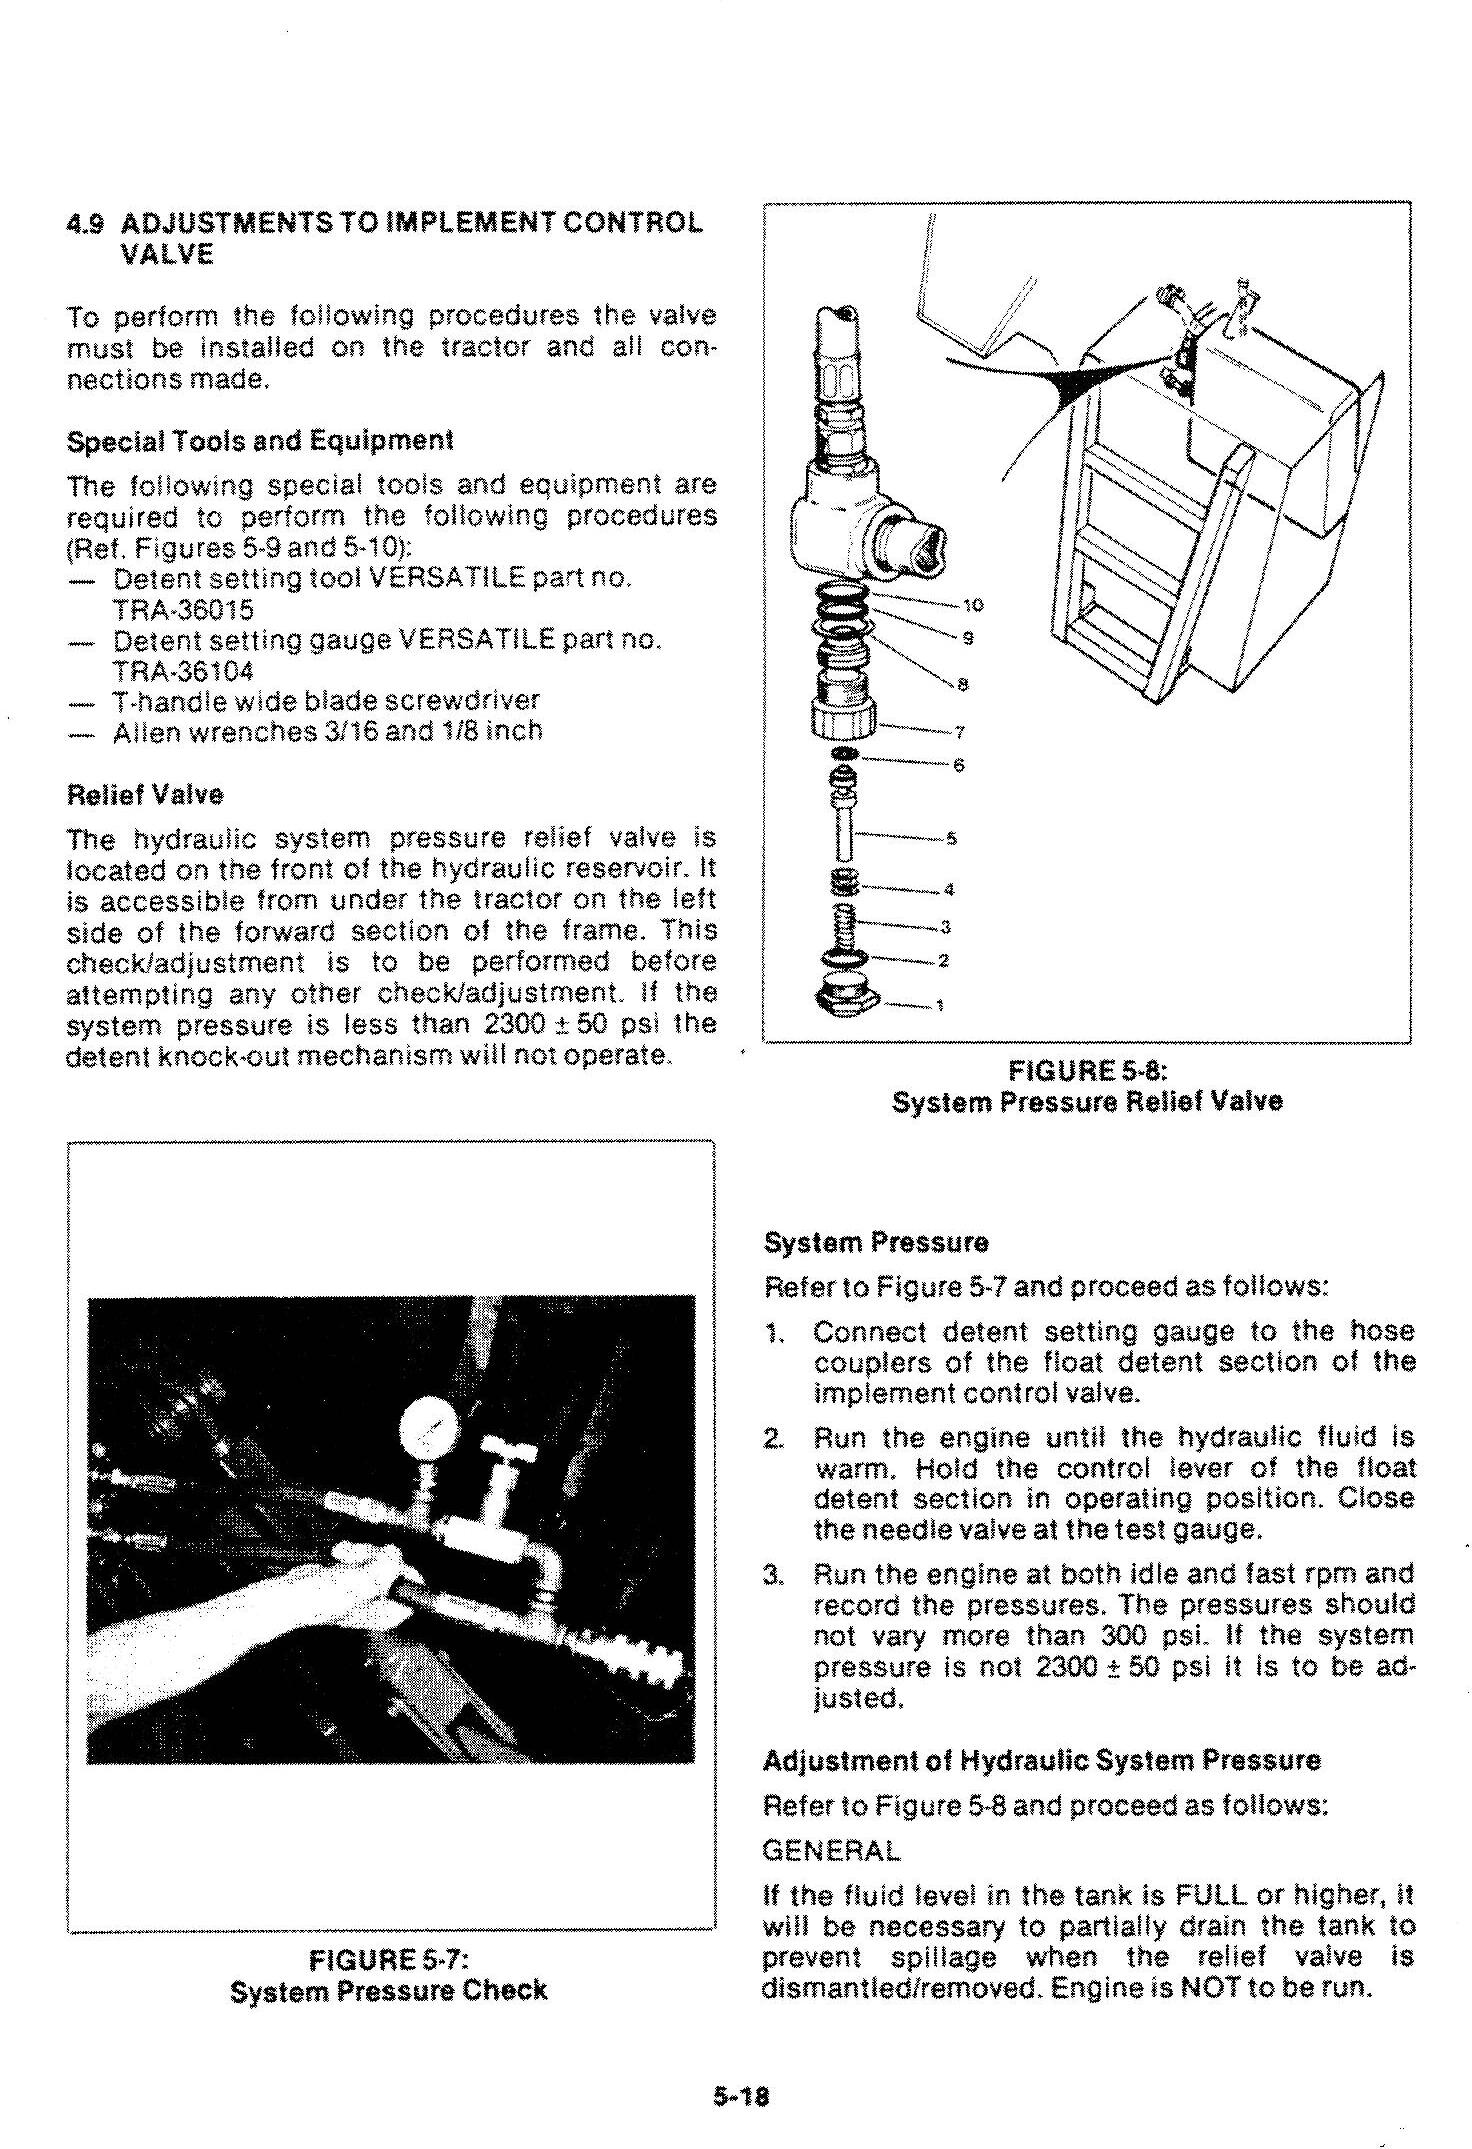 Ford Versatile 700, 750, 800, 825, 850, 900, 950 4WD Tractor Series2 (1977) Service Manual (PU4001) - 3